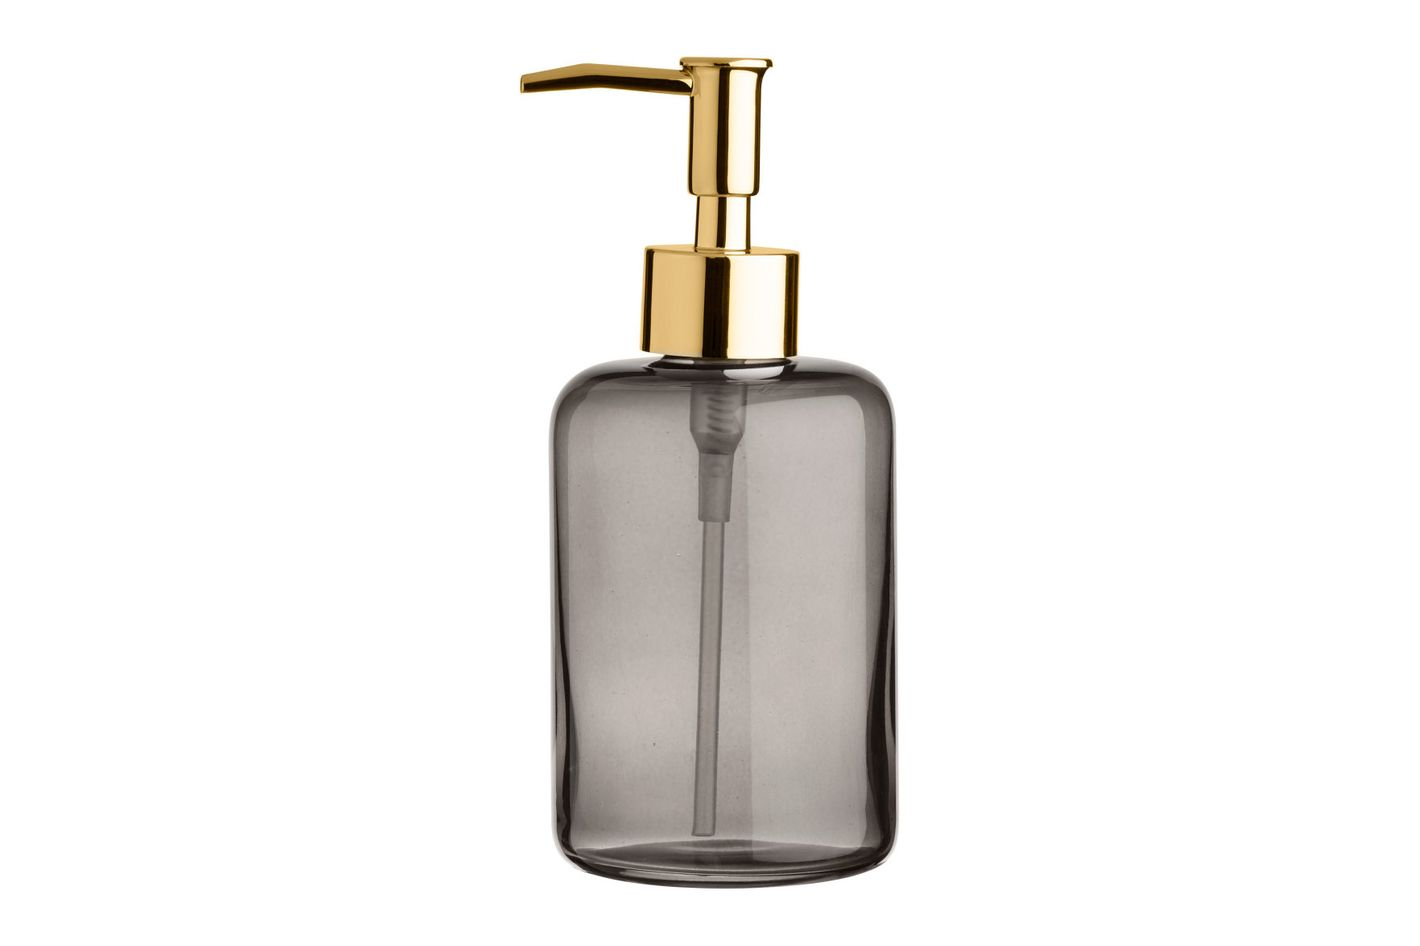 H&M Glass Soap Dispenser